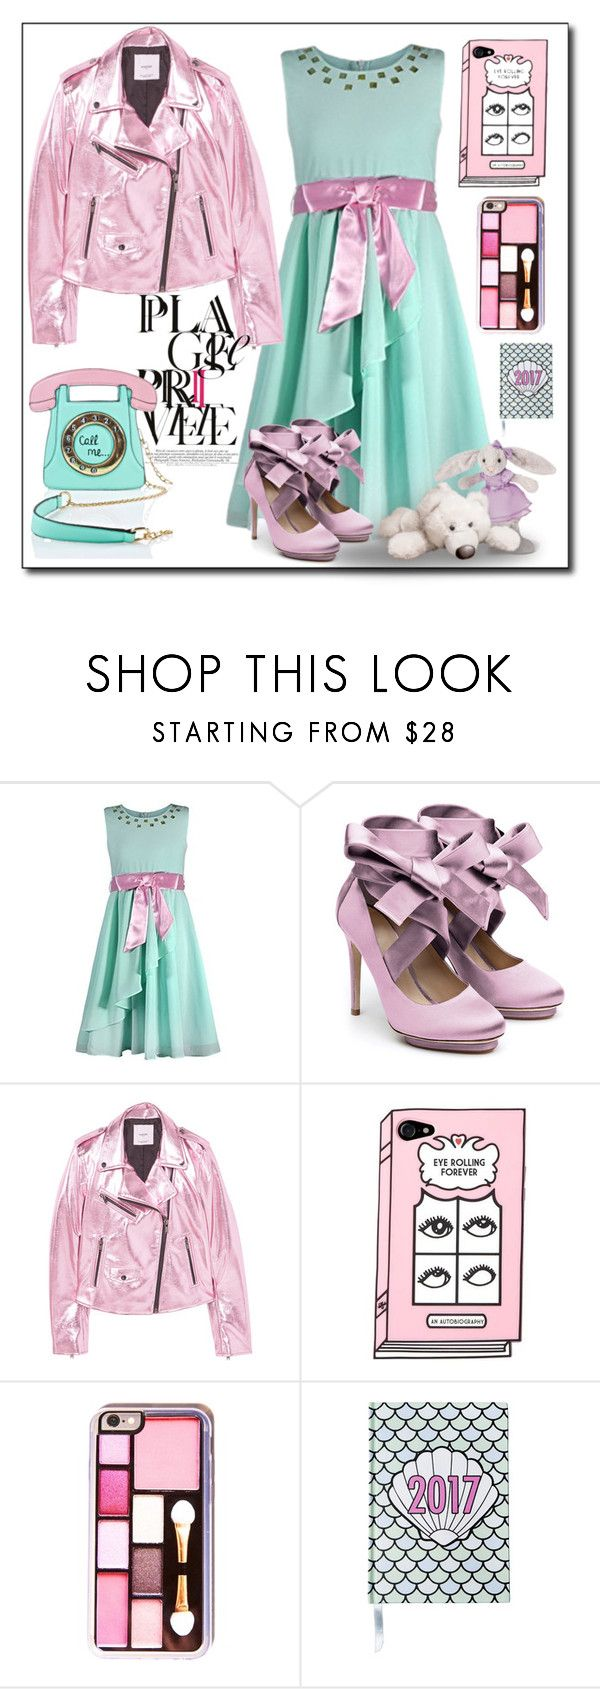 """""""Call me..."""" by oxyk23 ❤ liked on Polyvore featuring Liam Fahy, Bibi, MANGO, Valfré, 3 AM Imports and shapedbags"""